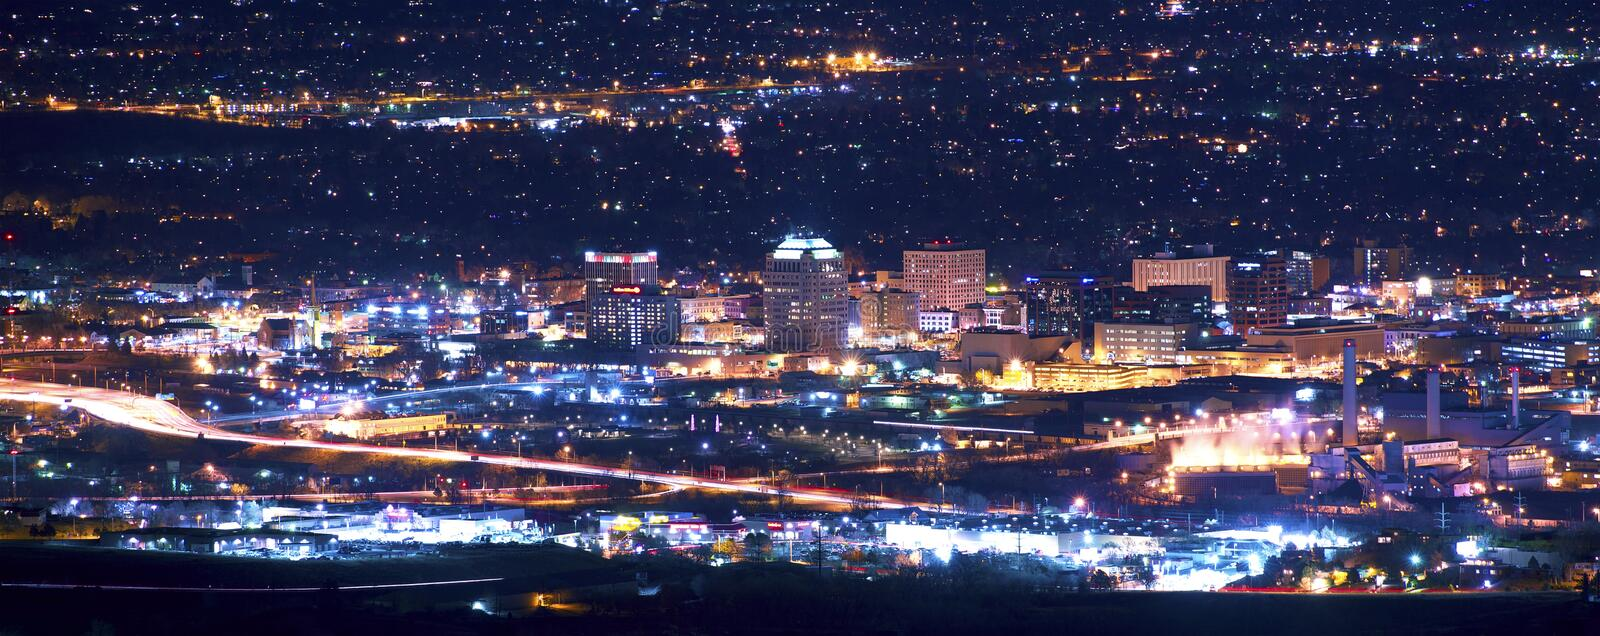 Colorado Springs at Night. Panoramic Photography. Colorado Springs, Colorado, United States royalty free stock image